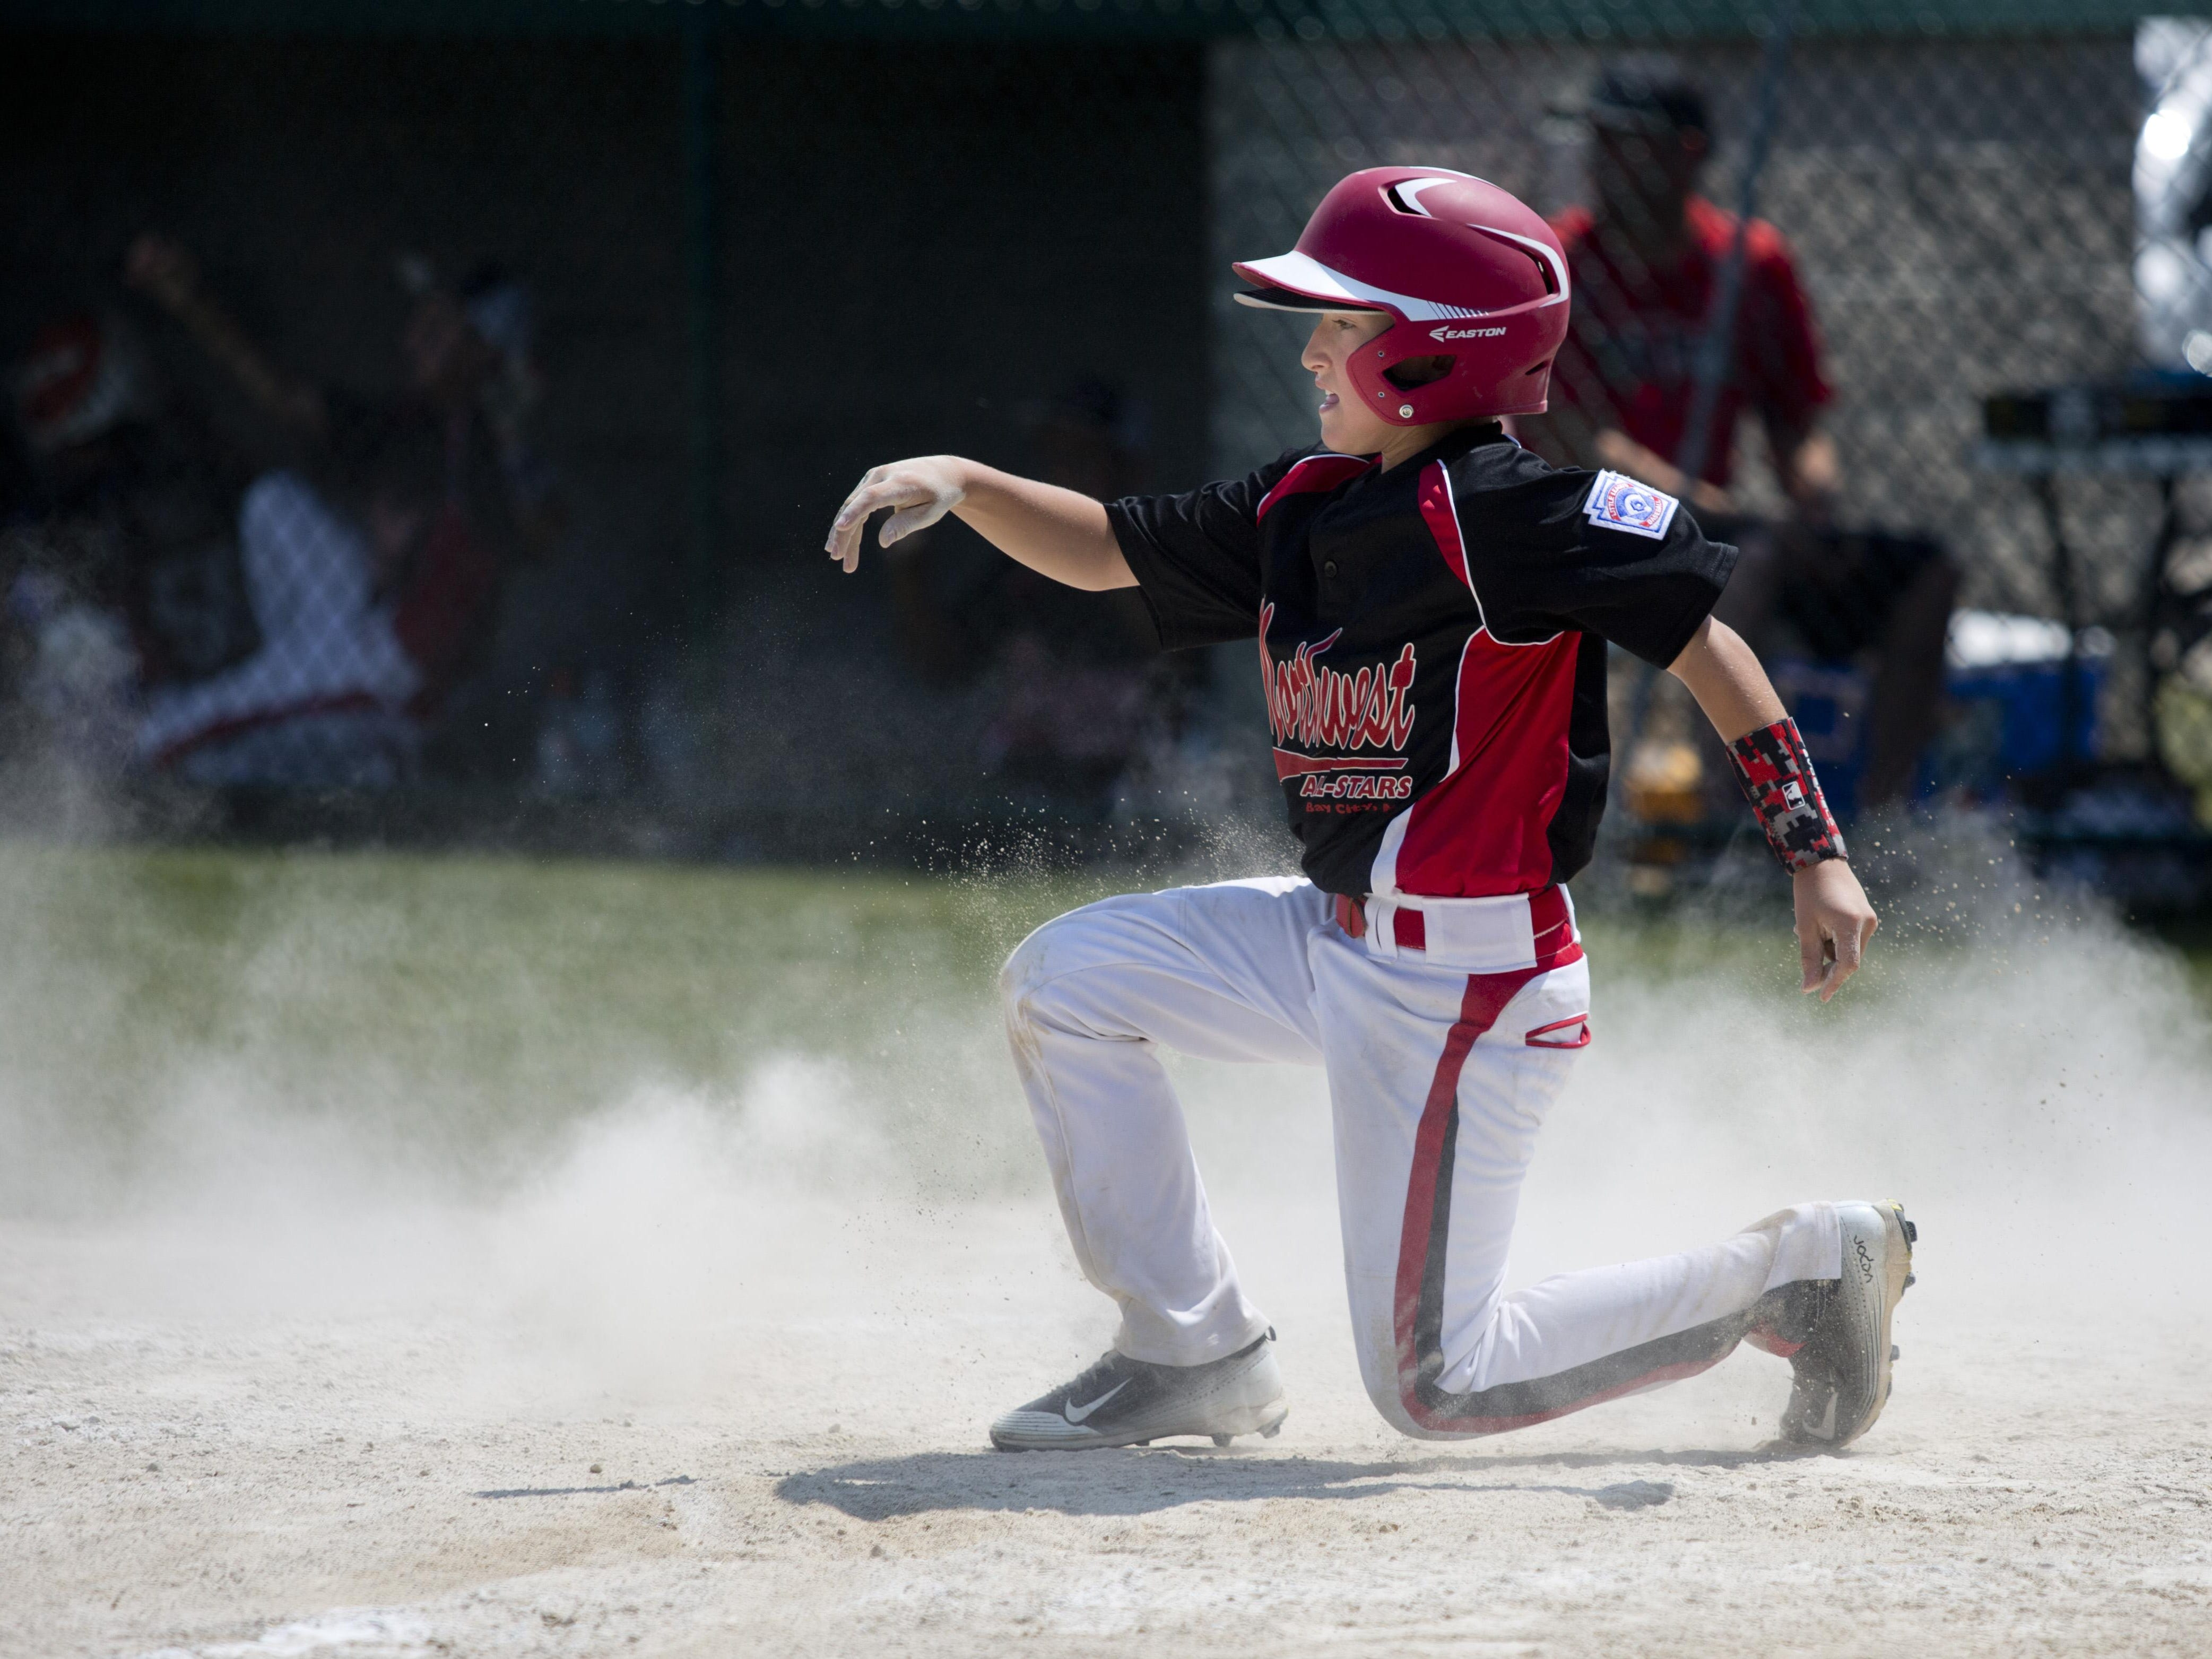 Bay City Northwest's Lucas Julian slides into home to score Wednesday in St. Clair.